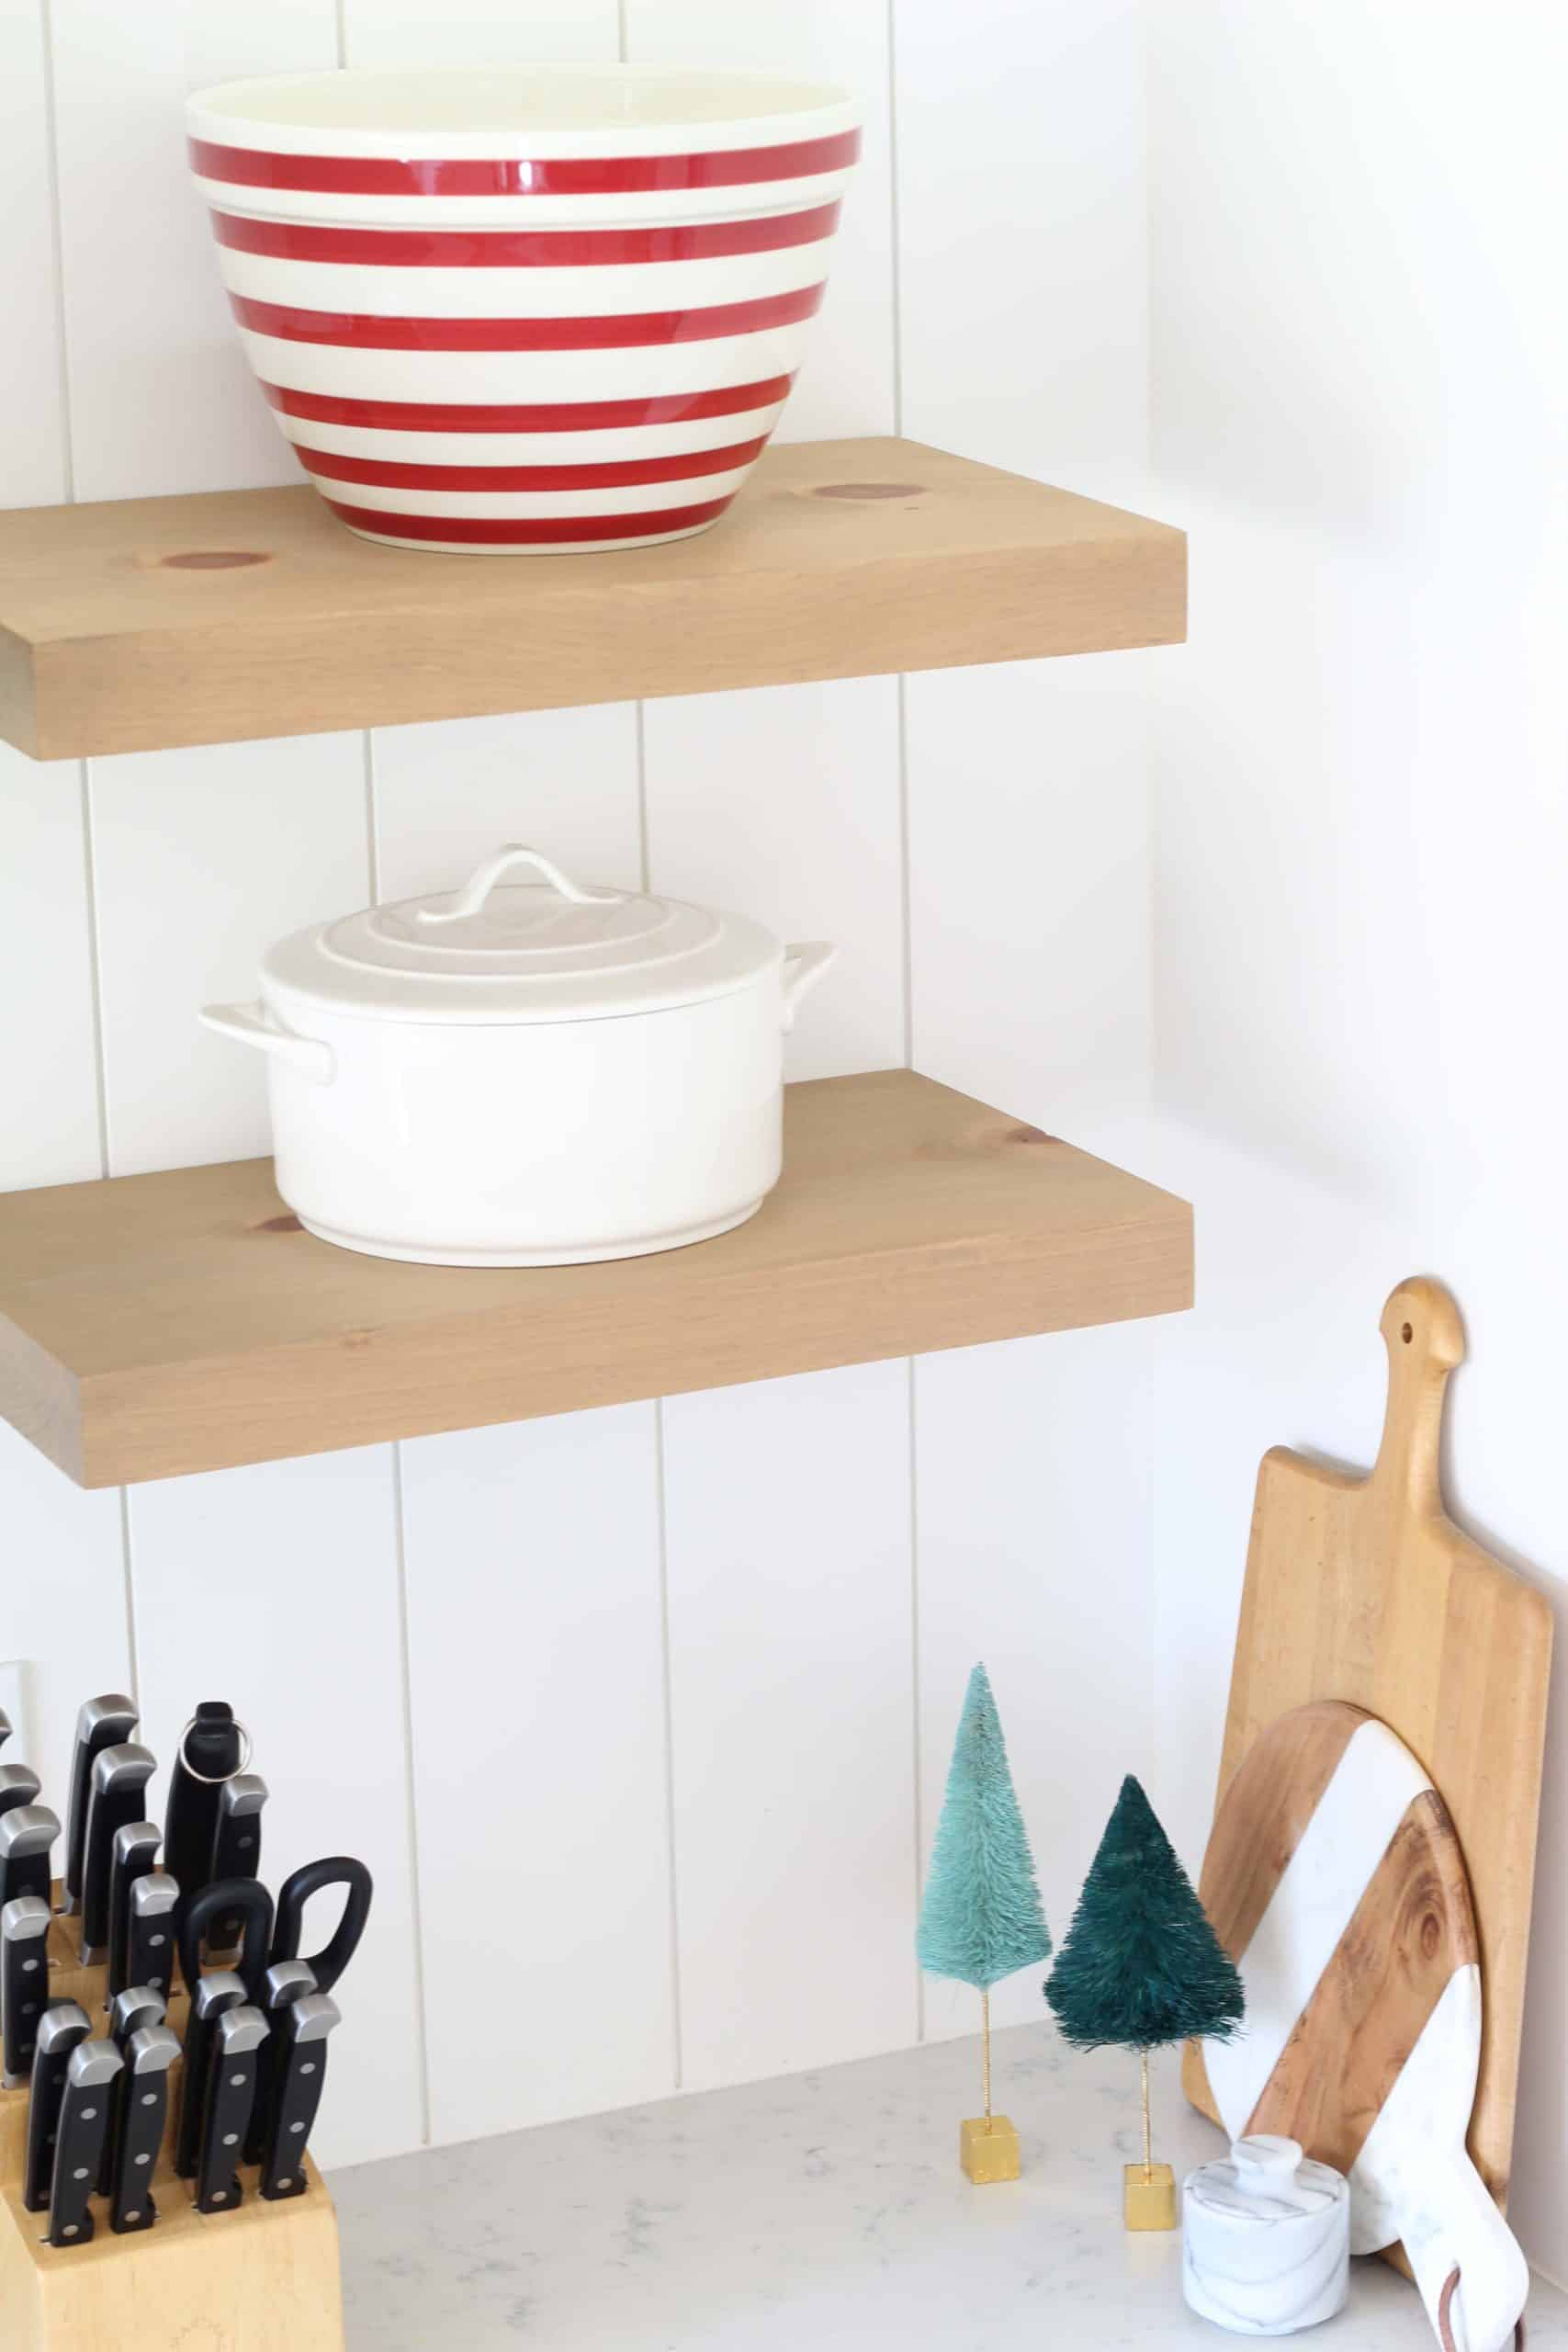 crate and barrel red striped mixing bowl, modern farmhouse kitchen open shelving